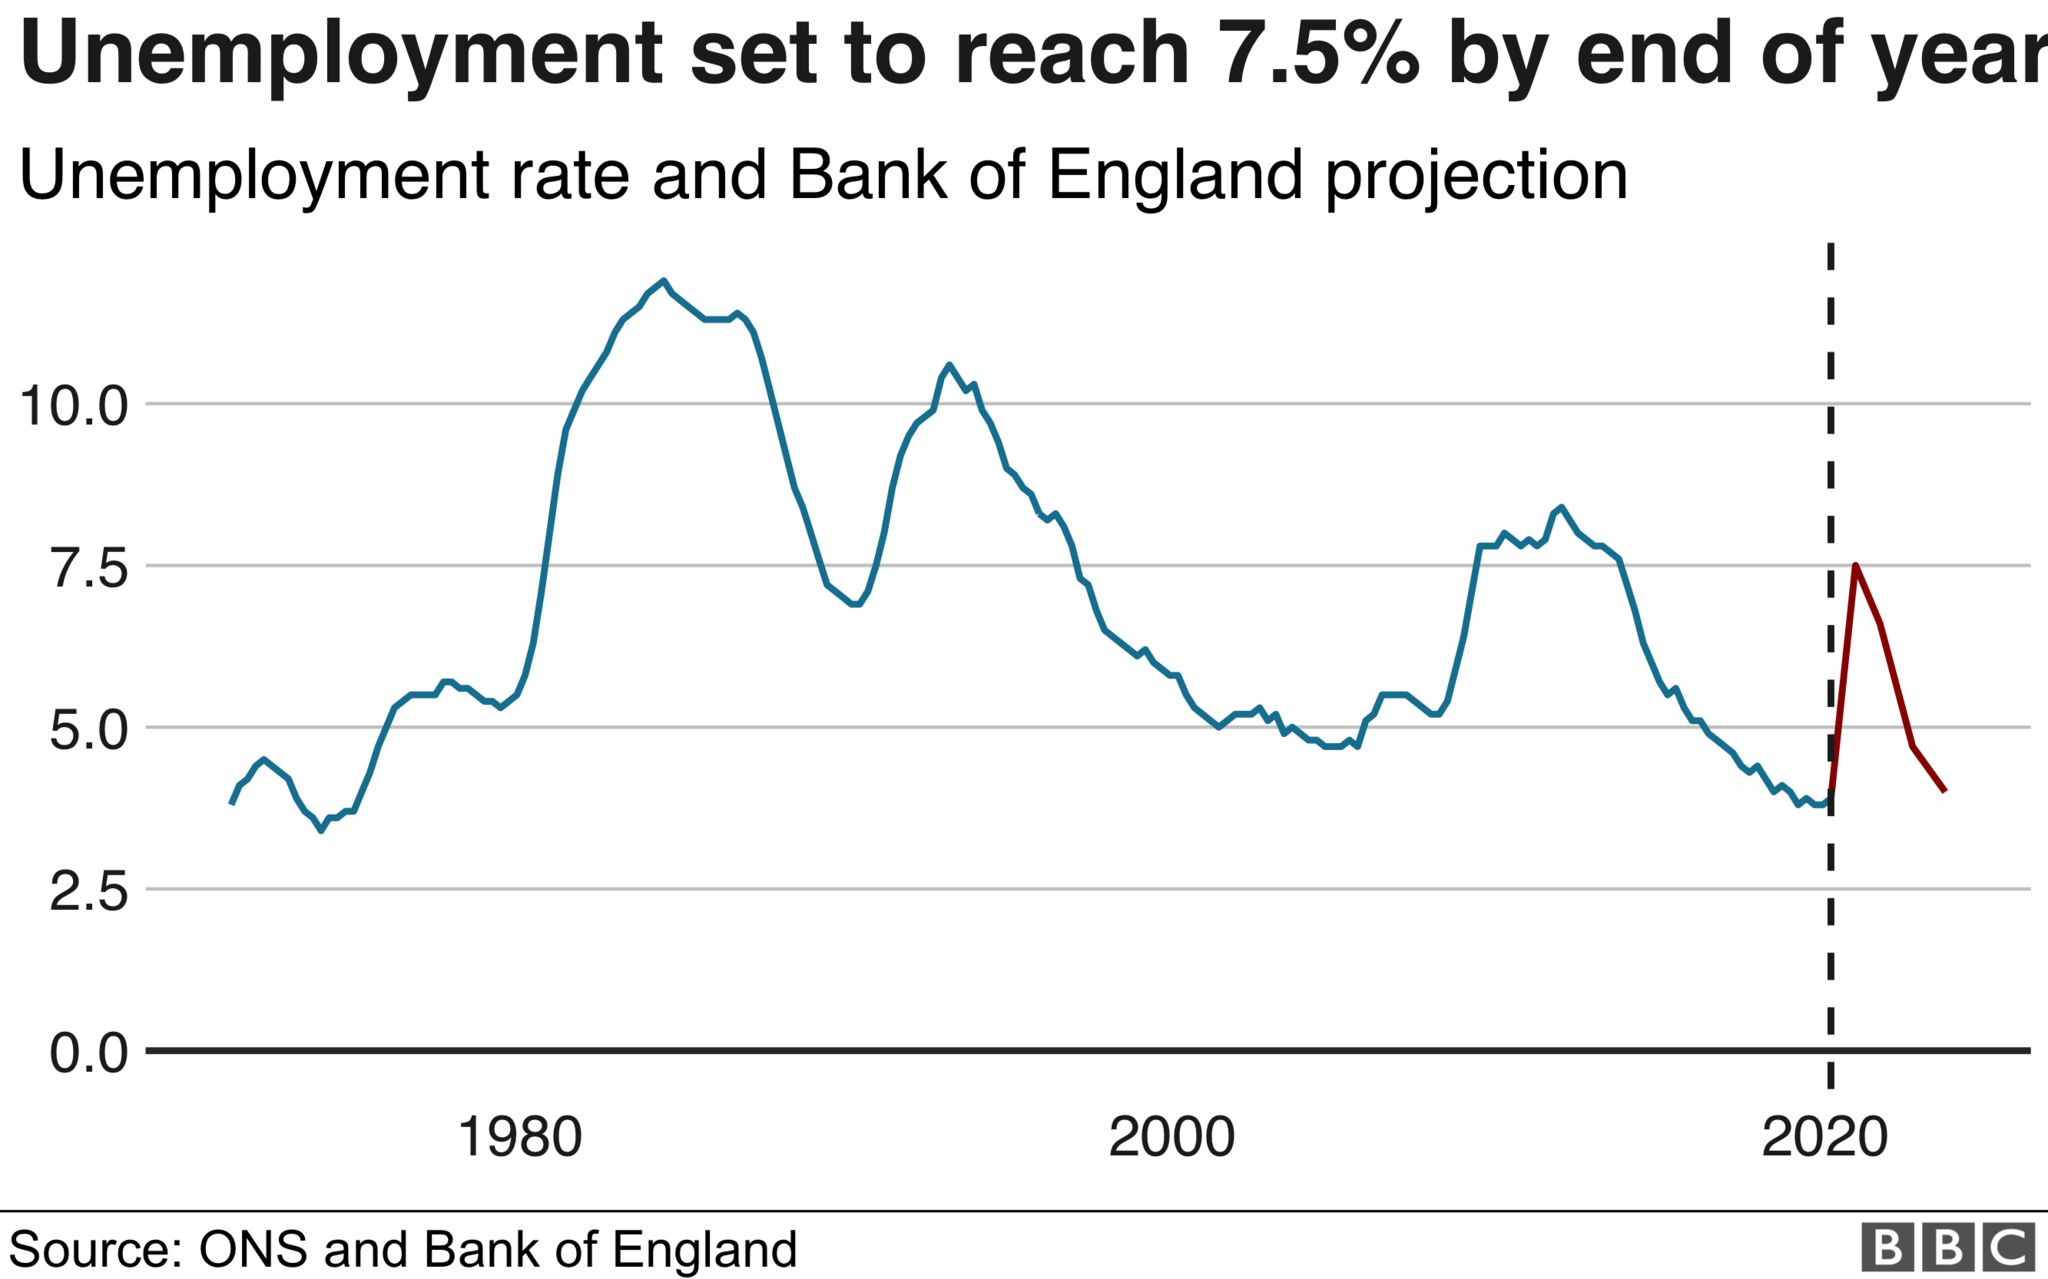 Unemployment to reach 7.5% by end of year - chart